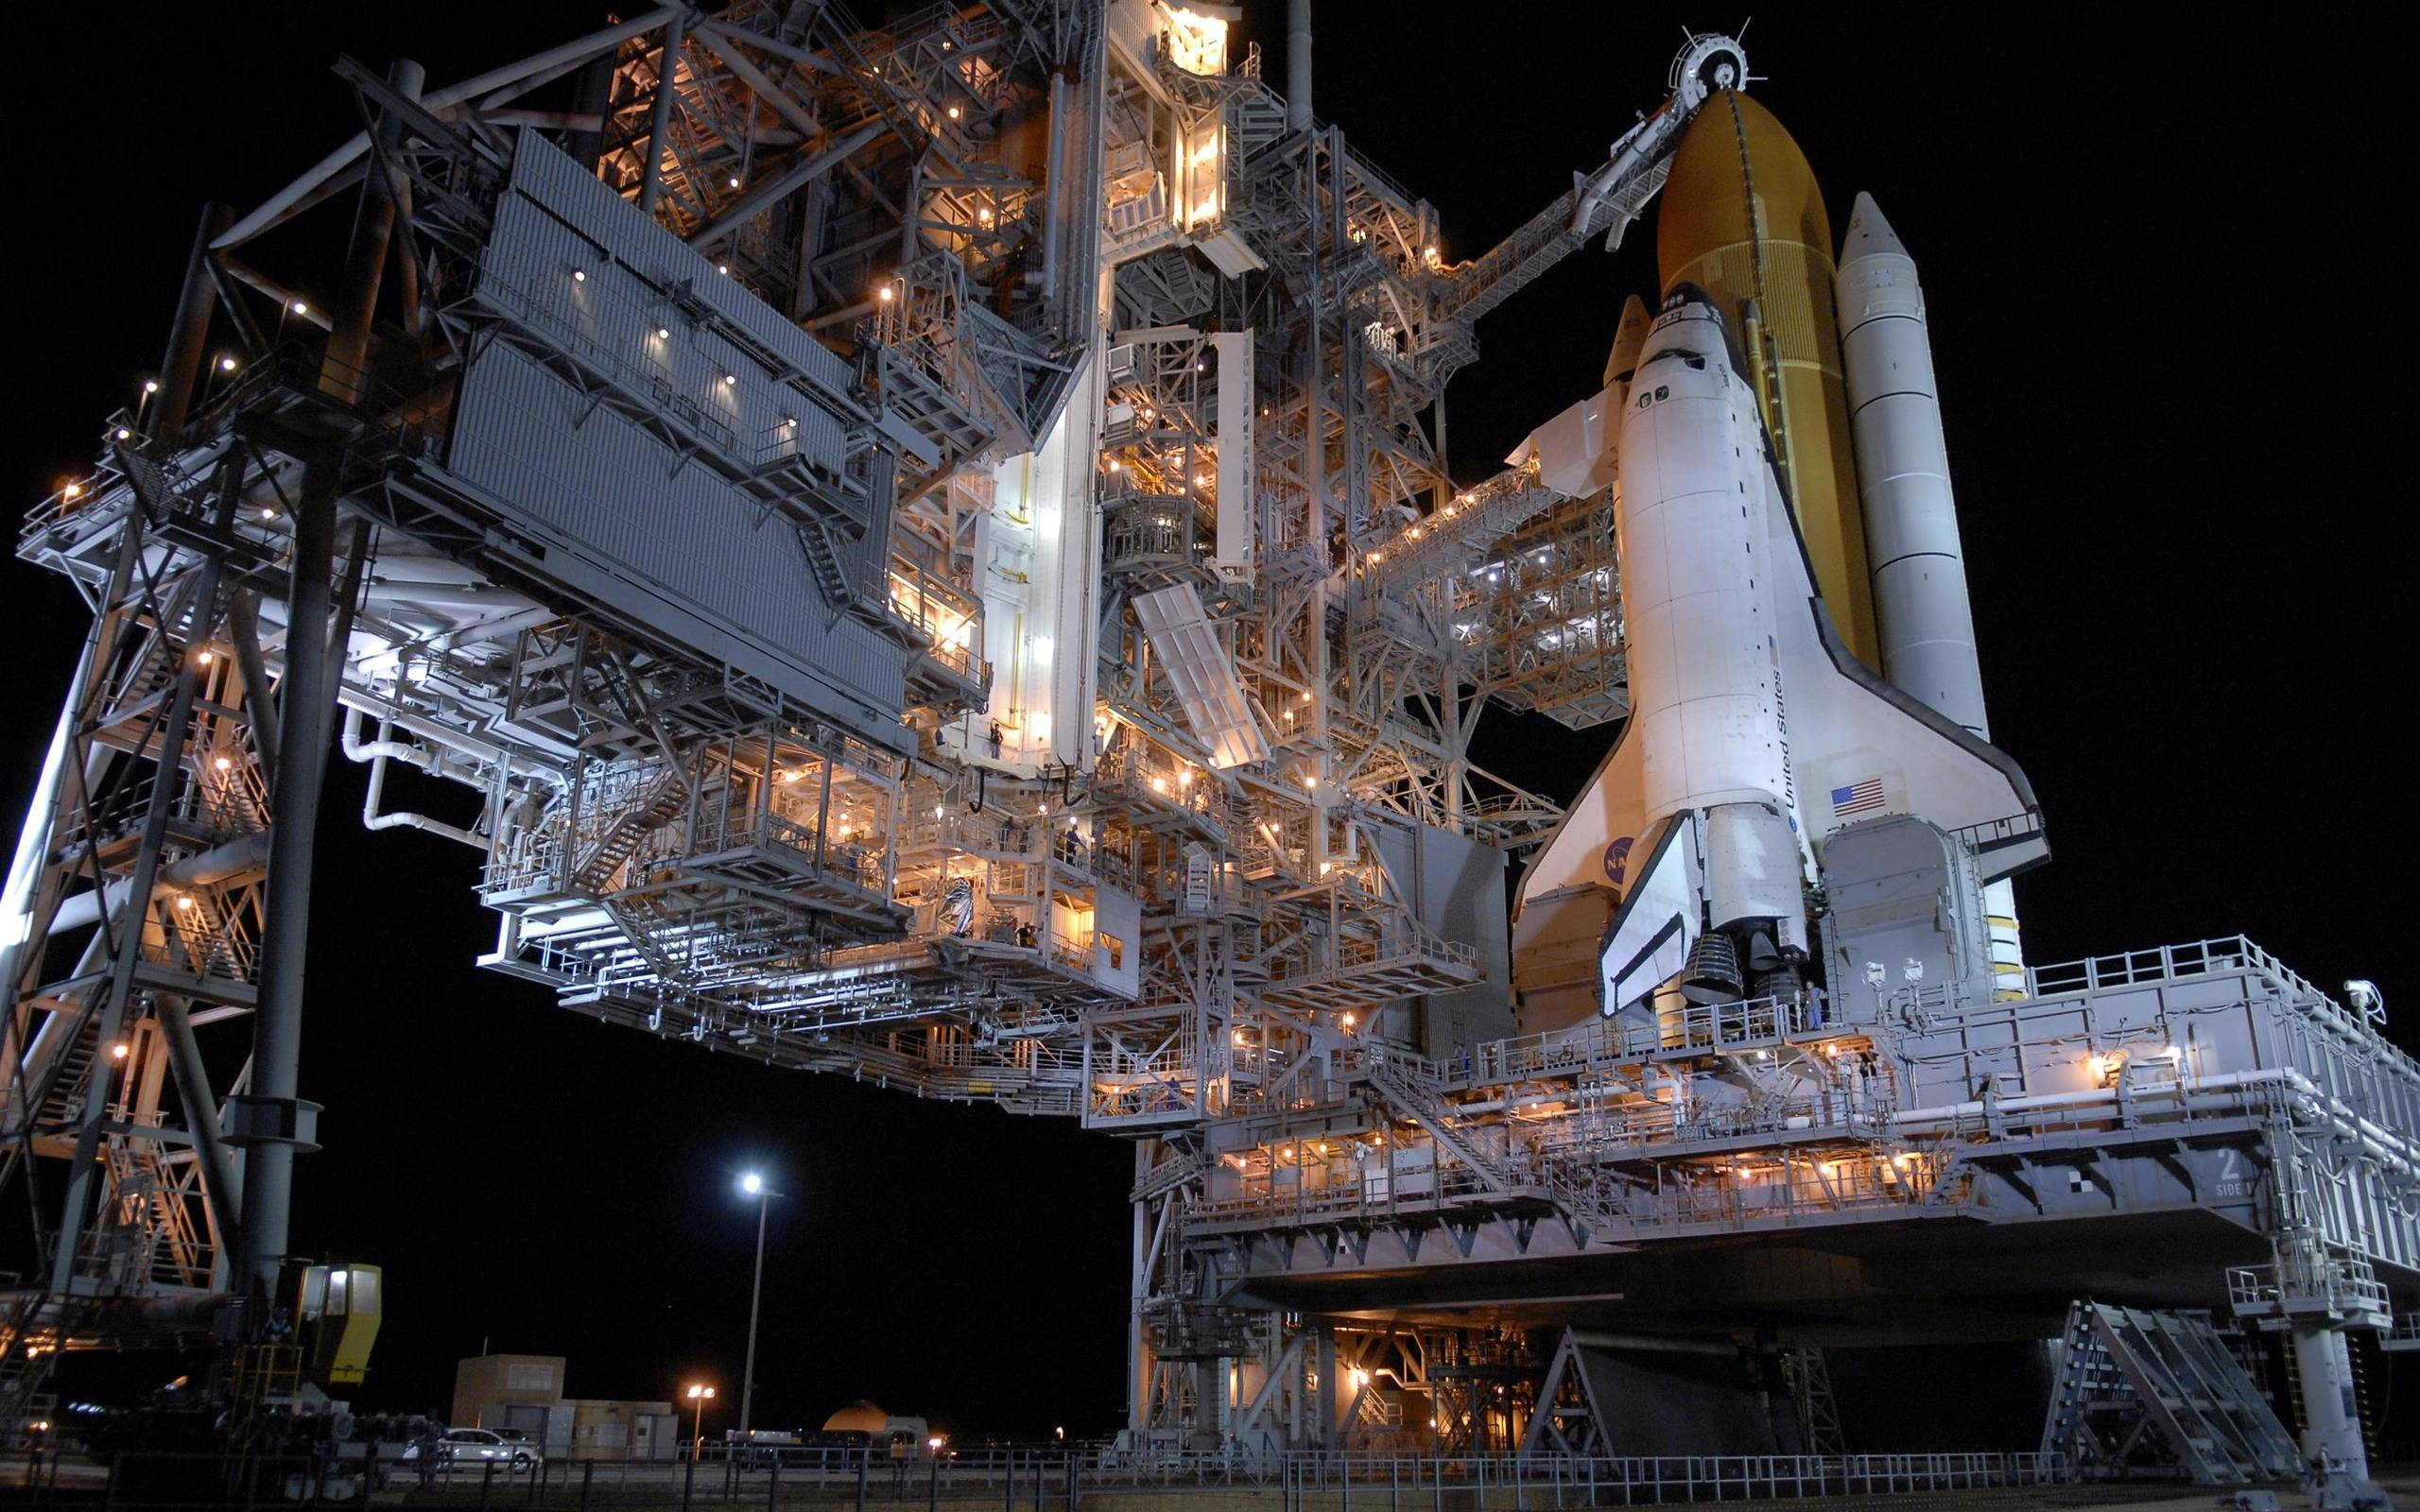 hd space shuttle sts 1 - photo #47